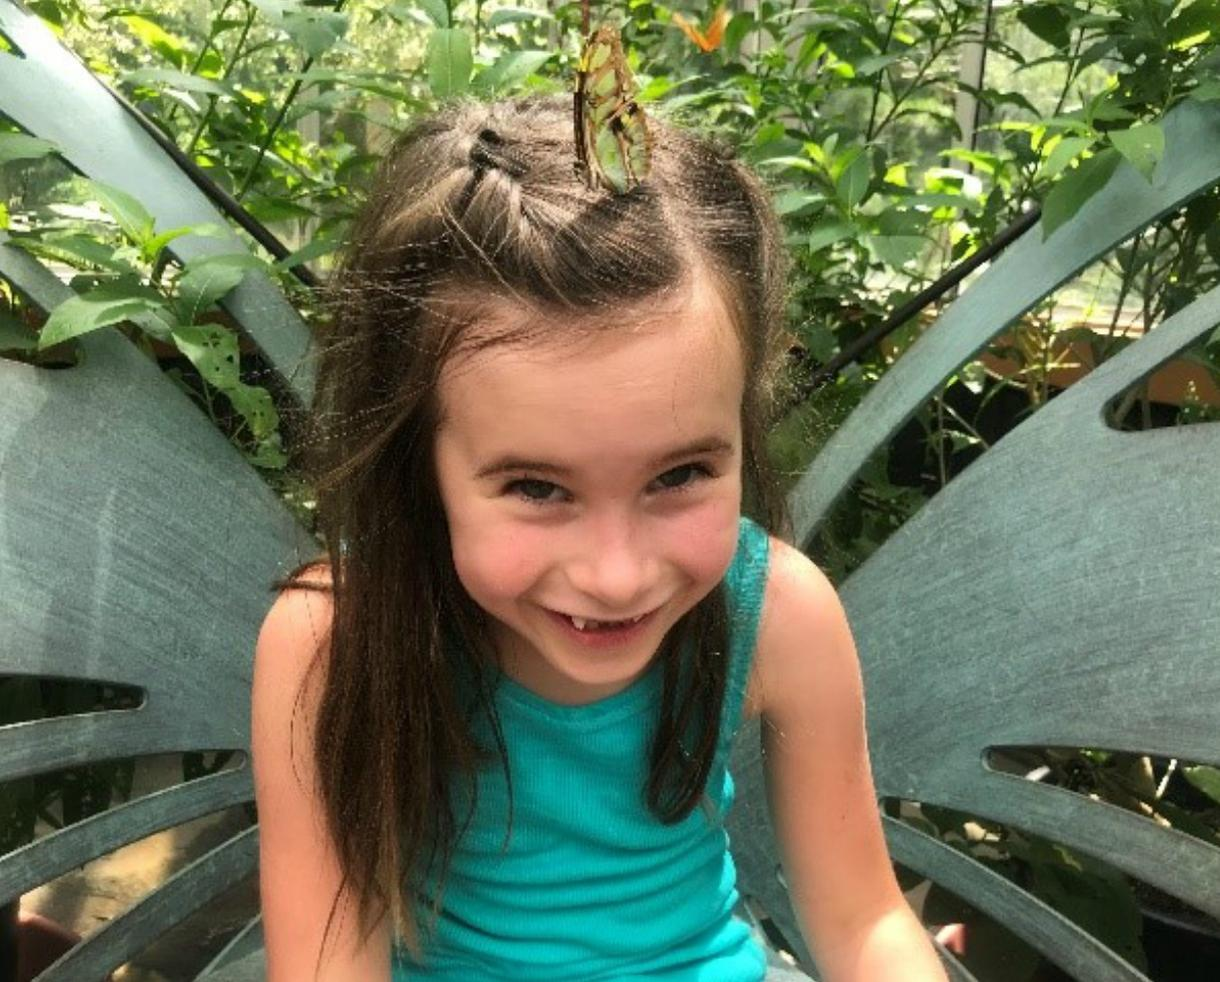 Wings of Fancy Butterfly & Caterpillar Exhibit at Brookside Gardens